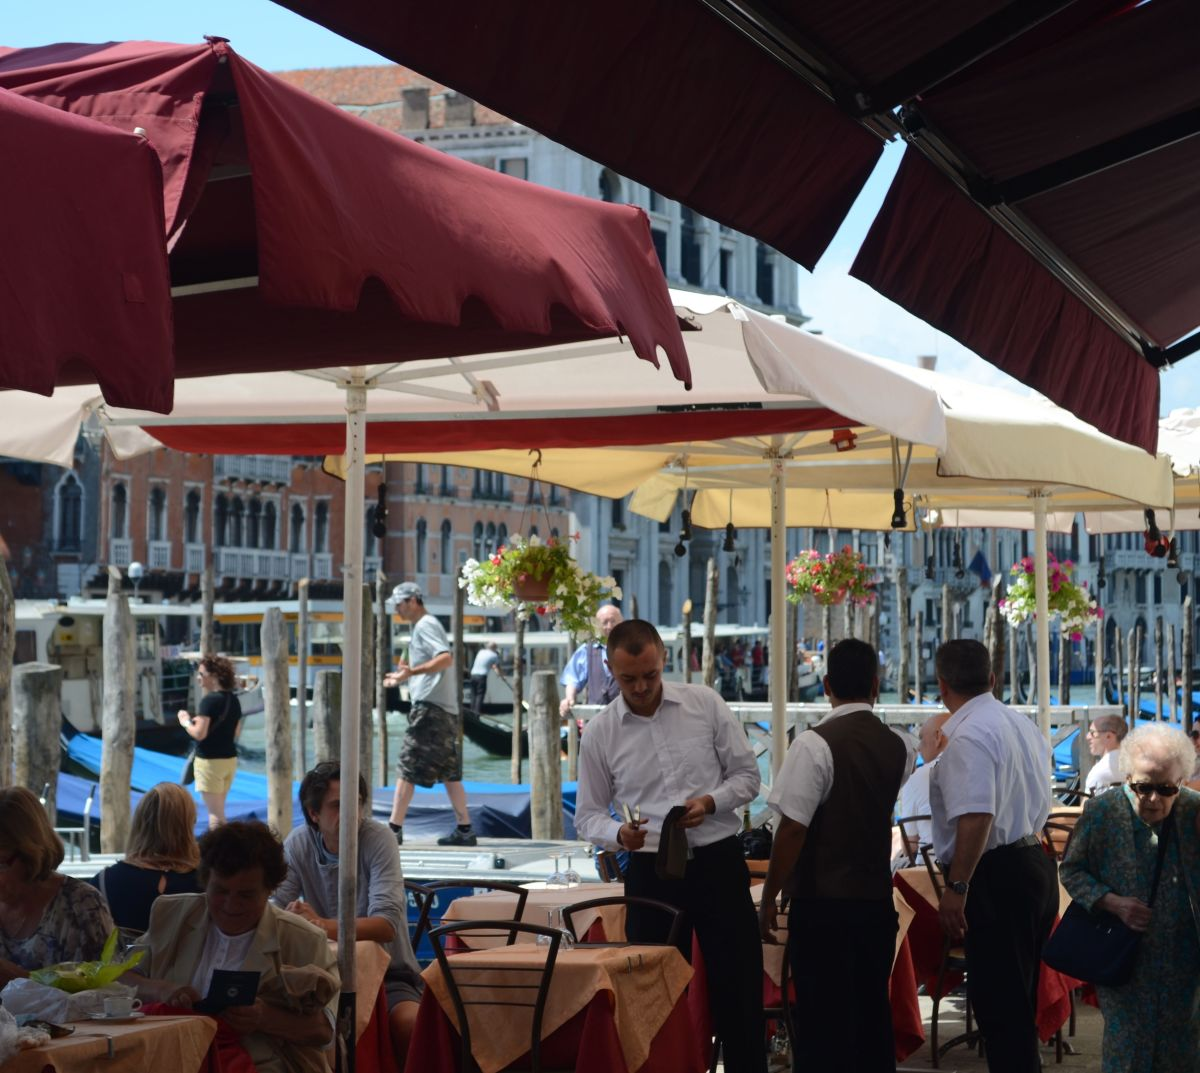 There is always somewhere interesting to dine in Venice (c) A. Harrison